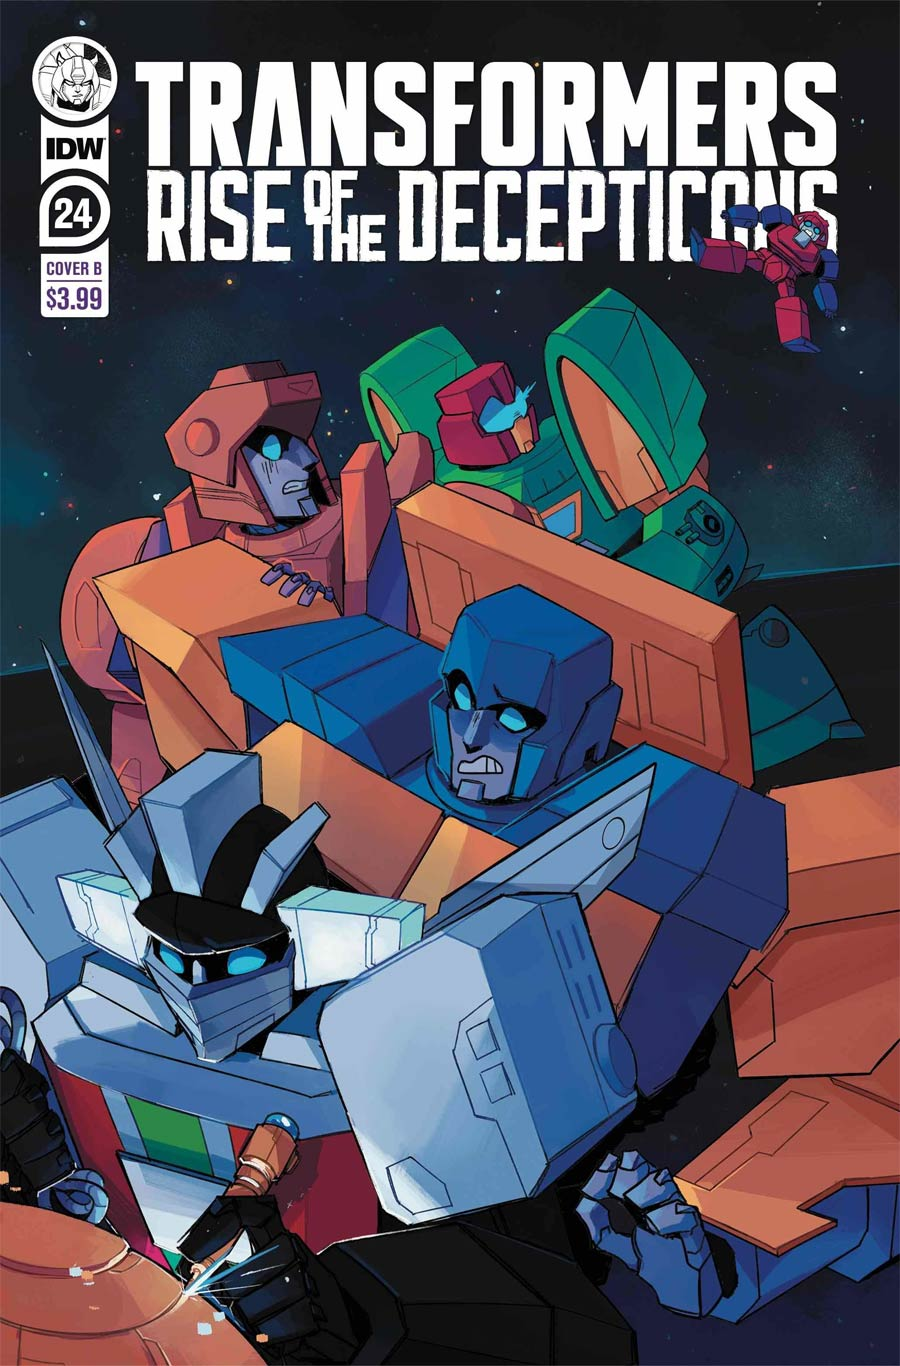 Transformers Vol 4 #24 Cover B Variant Red Powell Cover